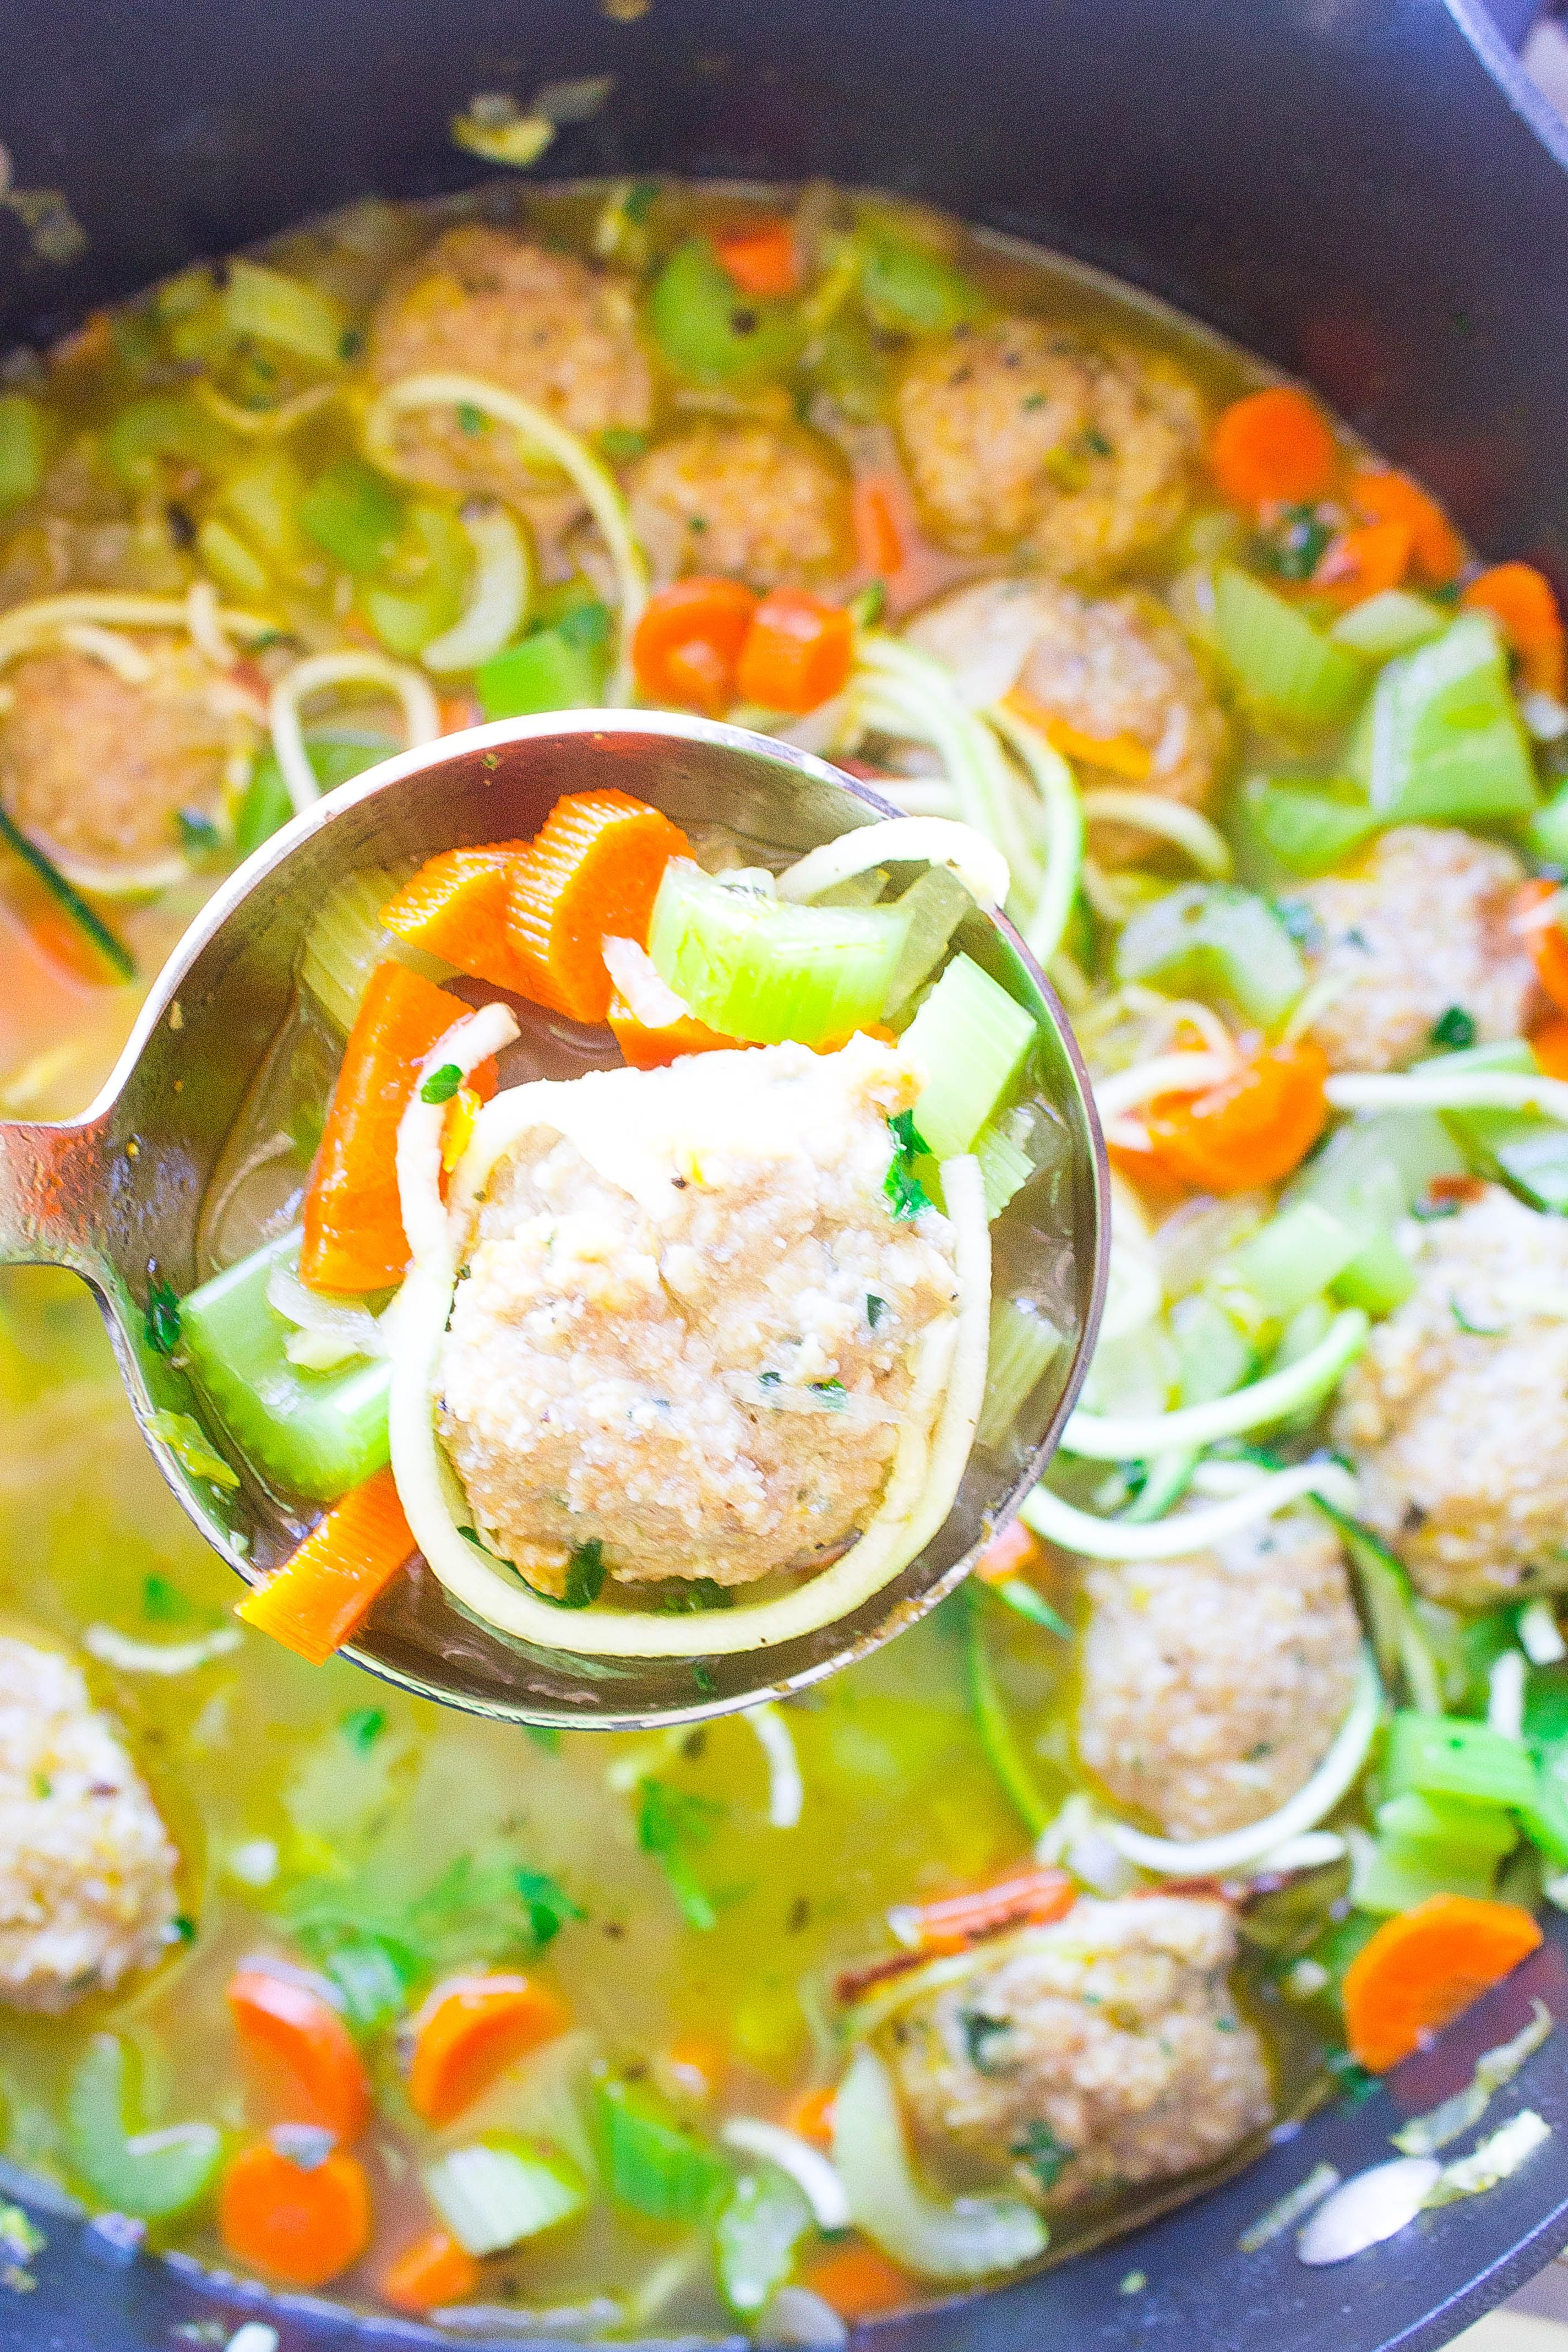 Chicken Zoodle Soup Chicken Zoodle Soup, made with zucchini noodles! Low carb, comforting and healthy!